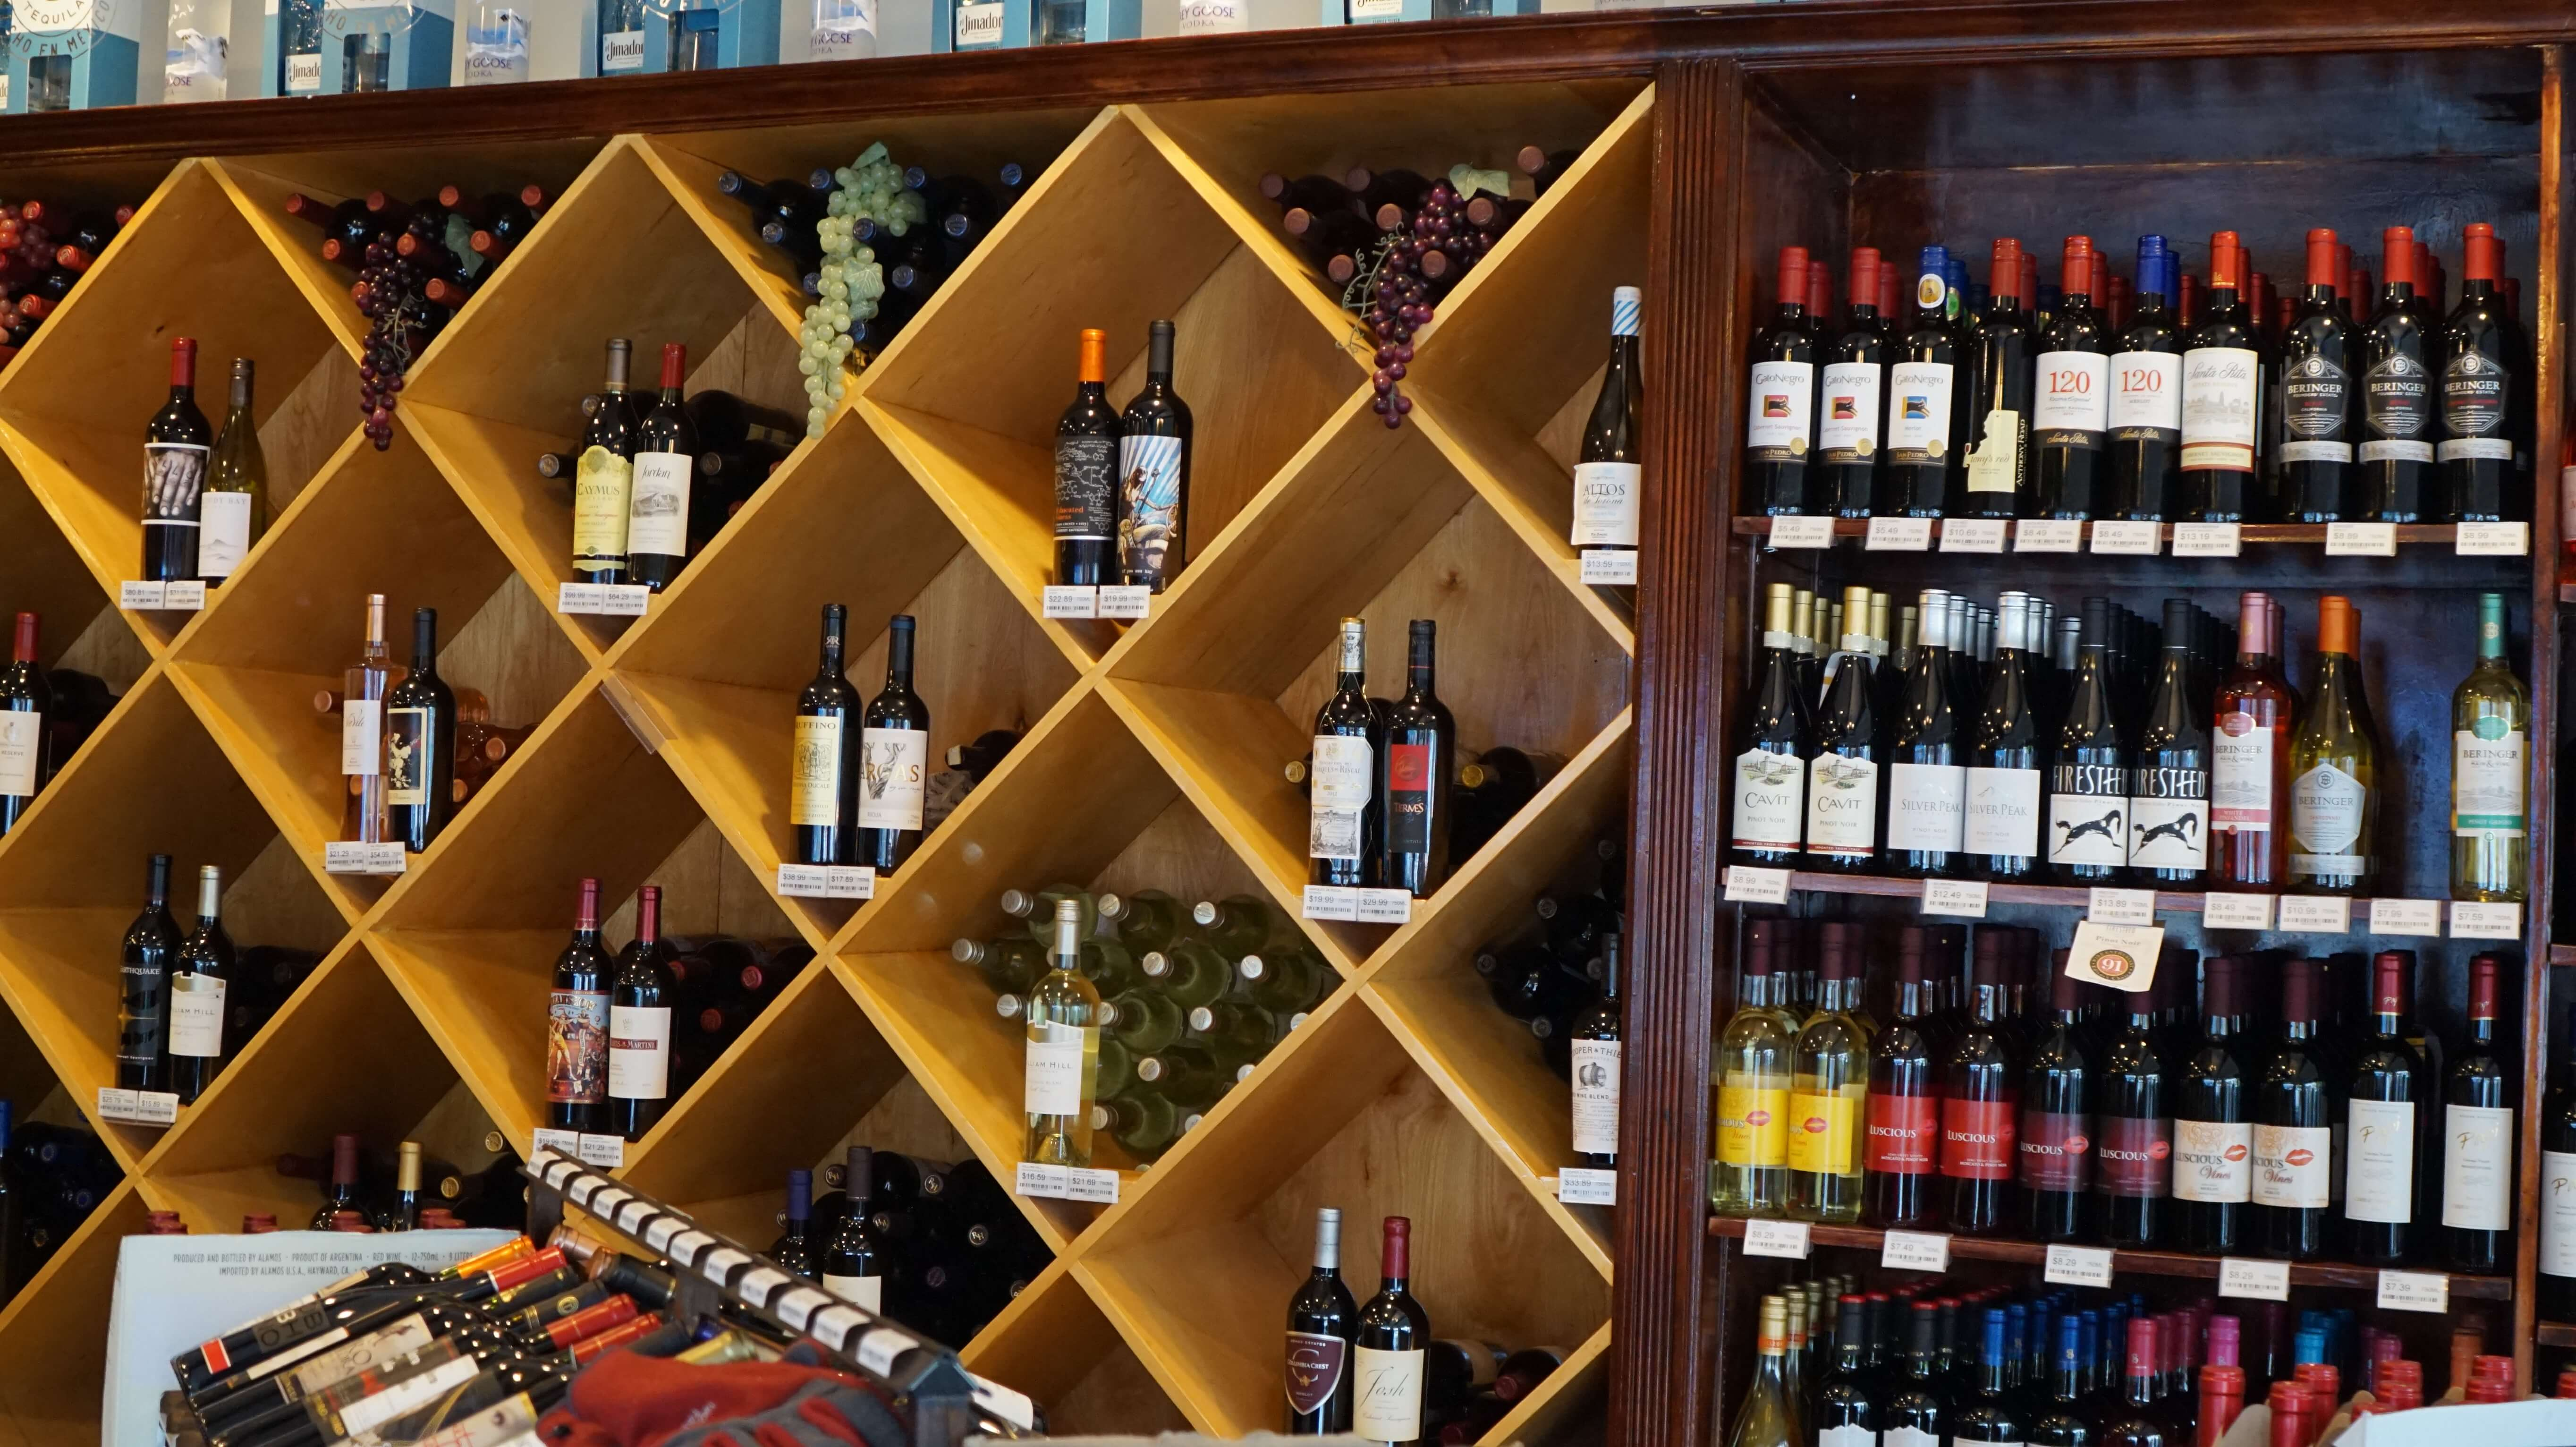 Cypress Ave Wine and Liquors in Ridgewood